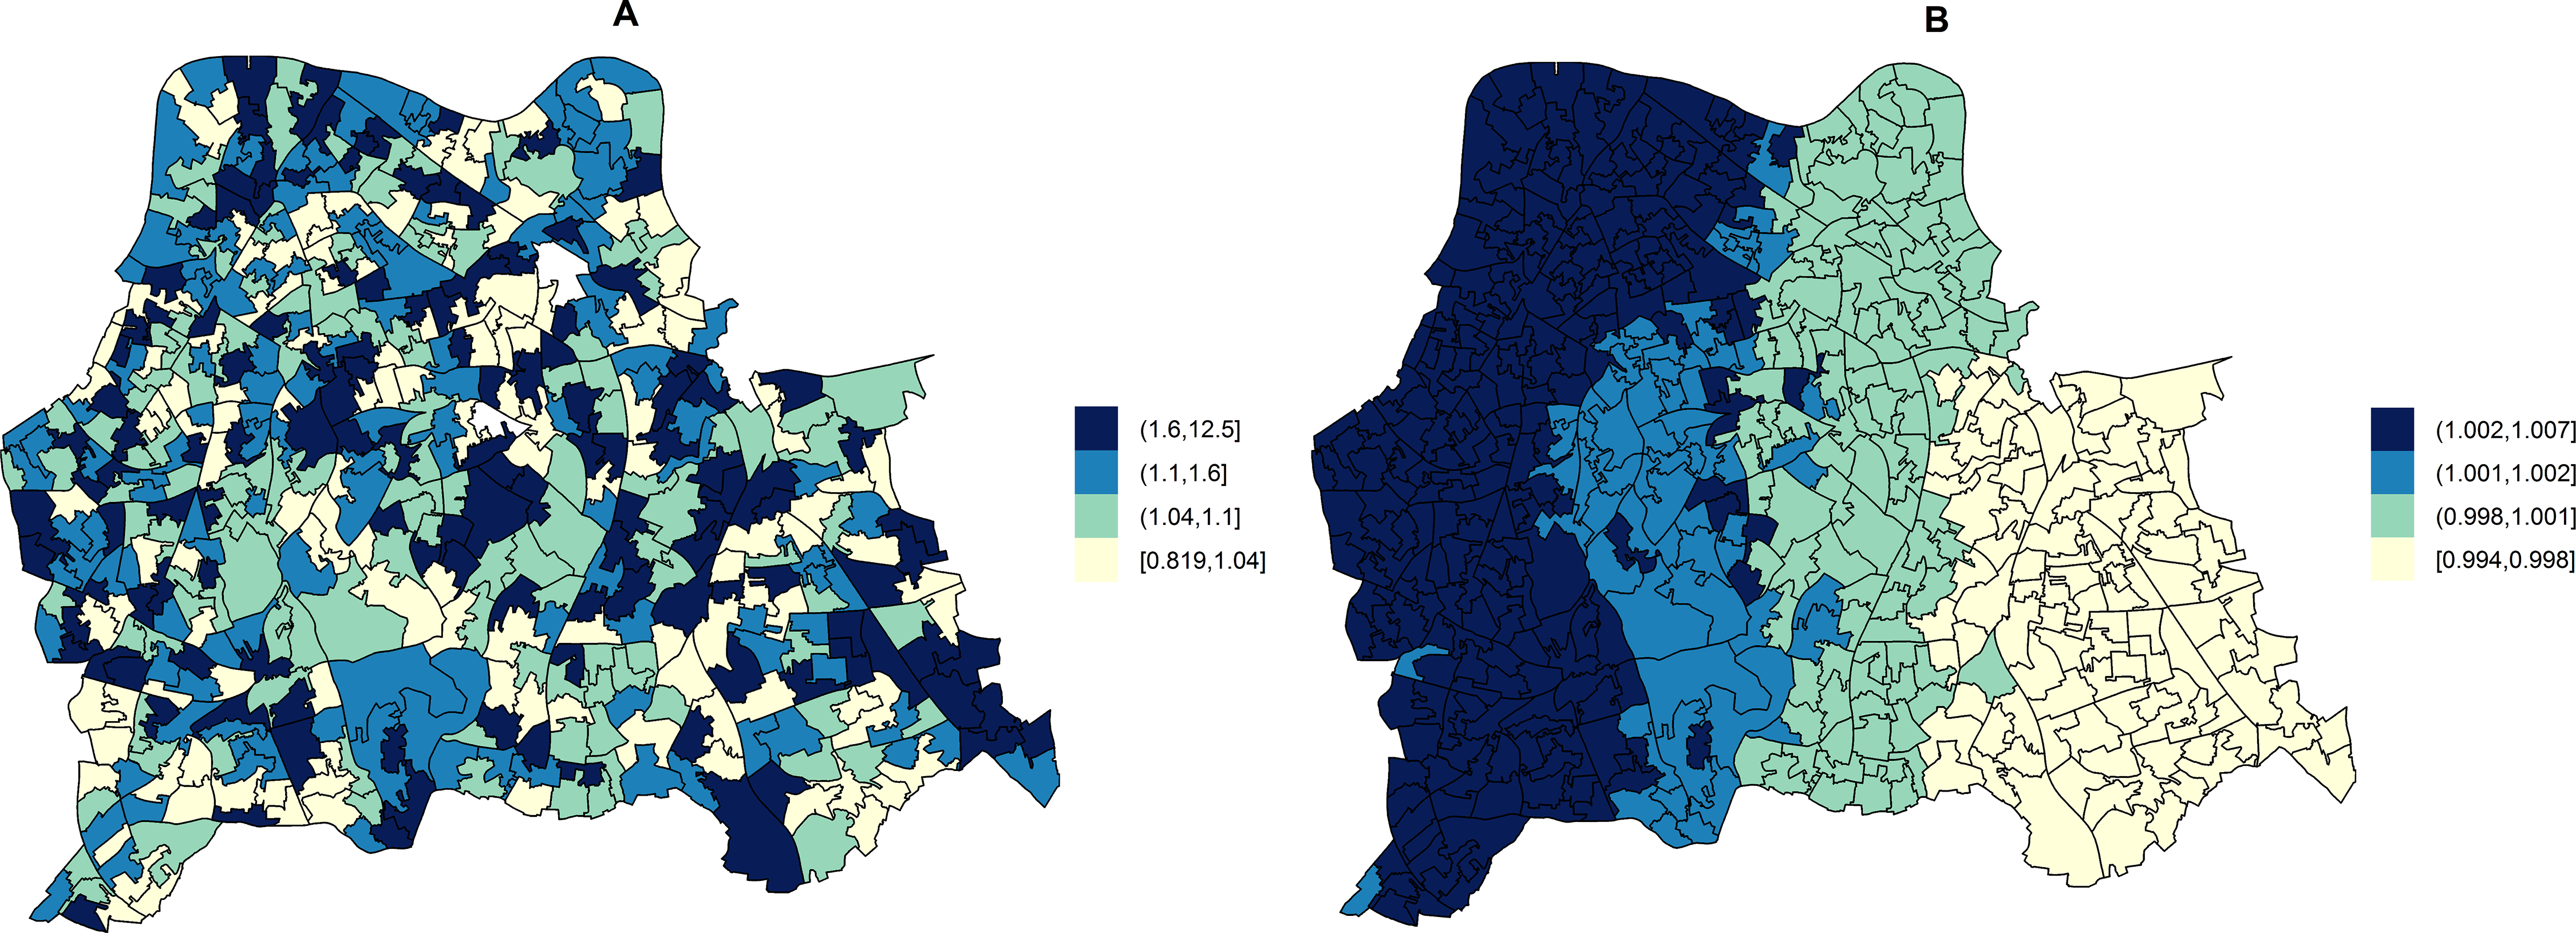 Maps for RR of HA- and CA-MRSA in LSOAs compared to the whole catchment area, in ecological regression models accounting for area-specific quintile-stratified percentage of usual residents attending a hospital and households deprived in 2–4 dimensions (HA-MRSA) or 1–2 dimensions (CA- MRSA).